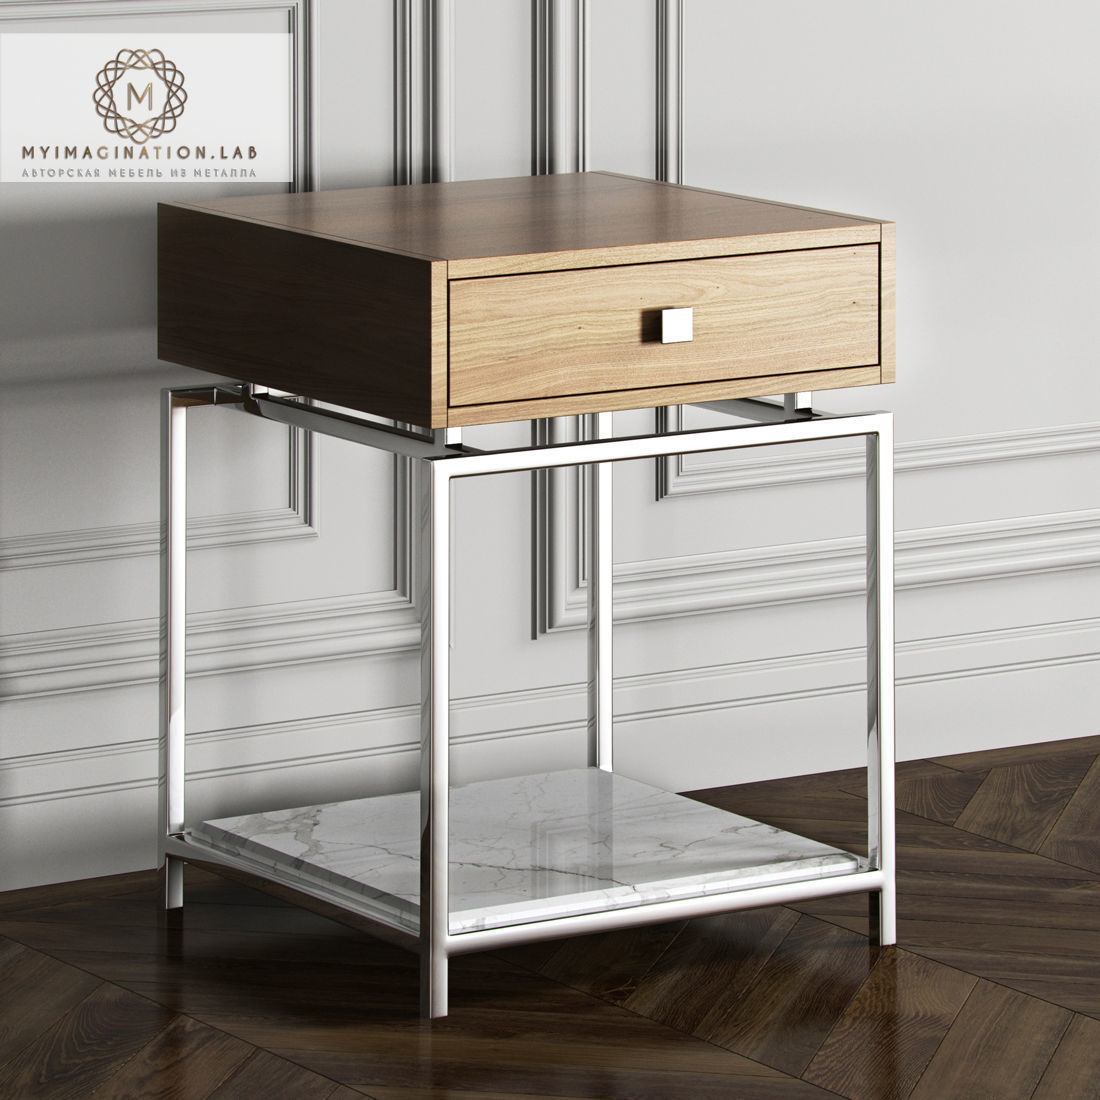 Room Nightstand by My Imagination